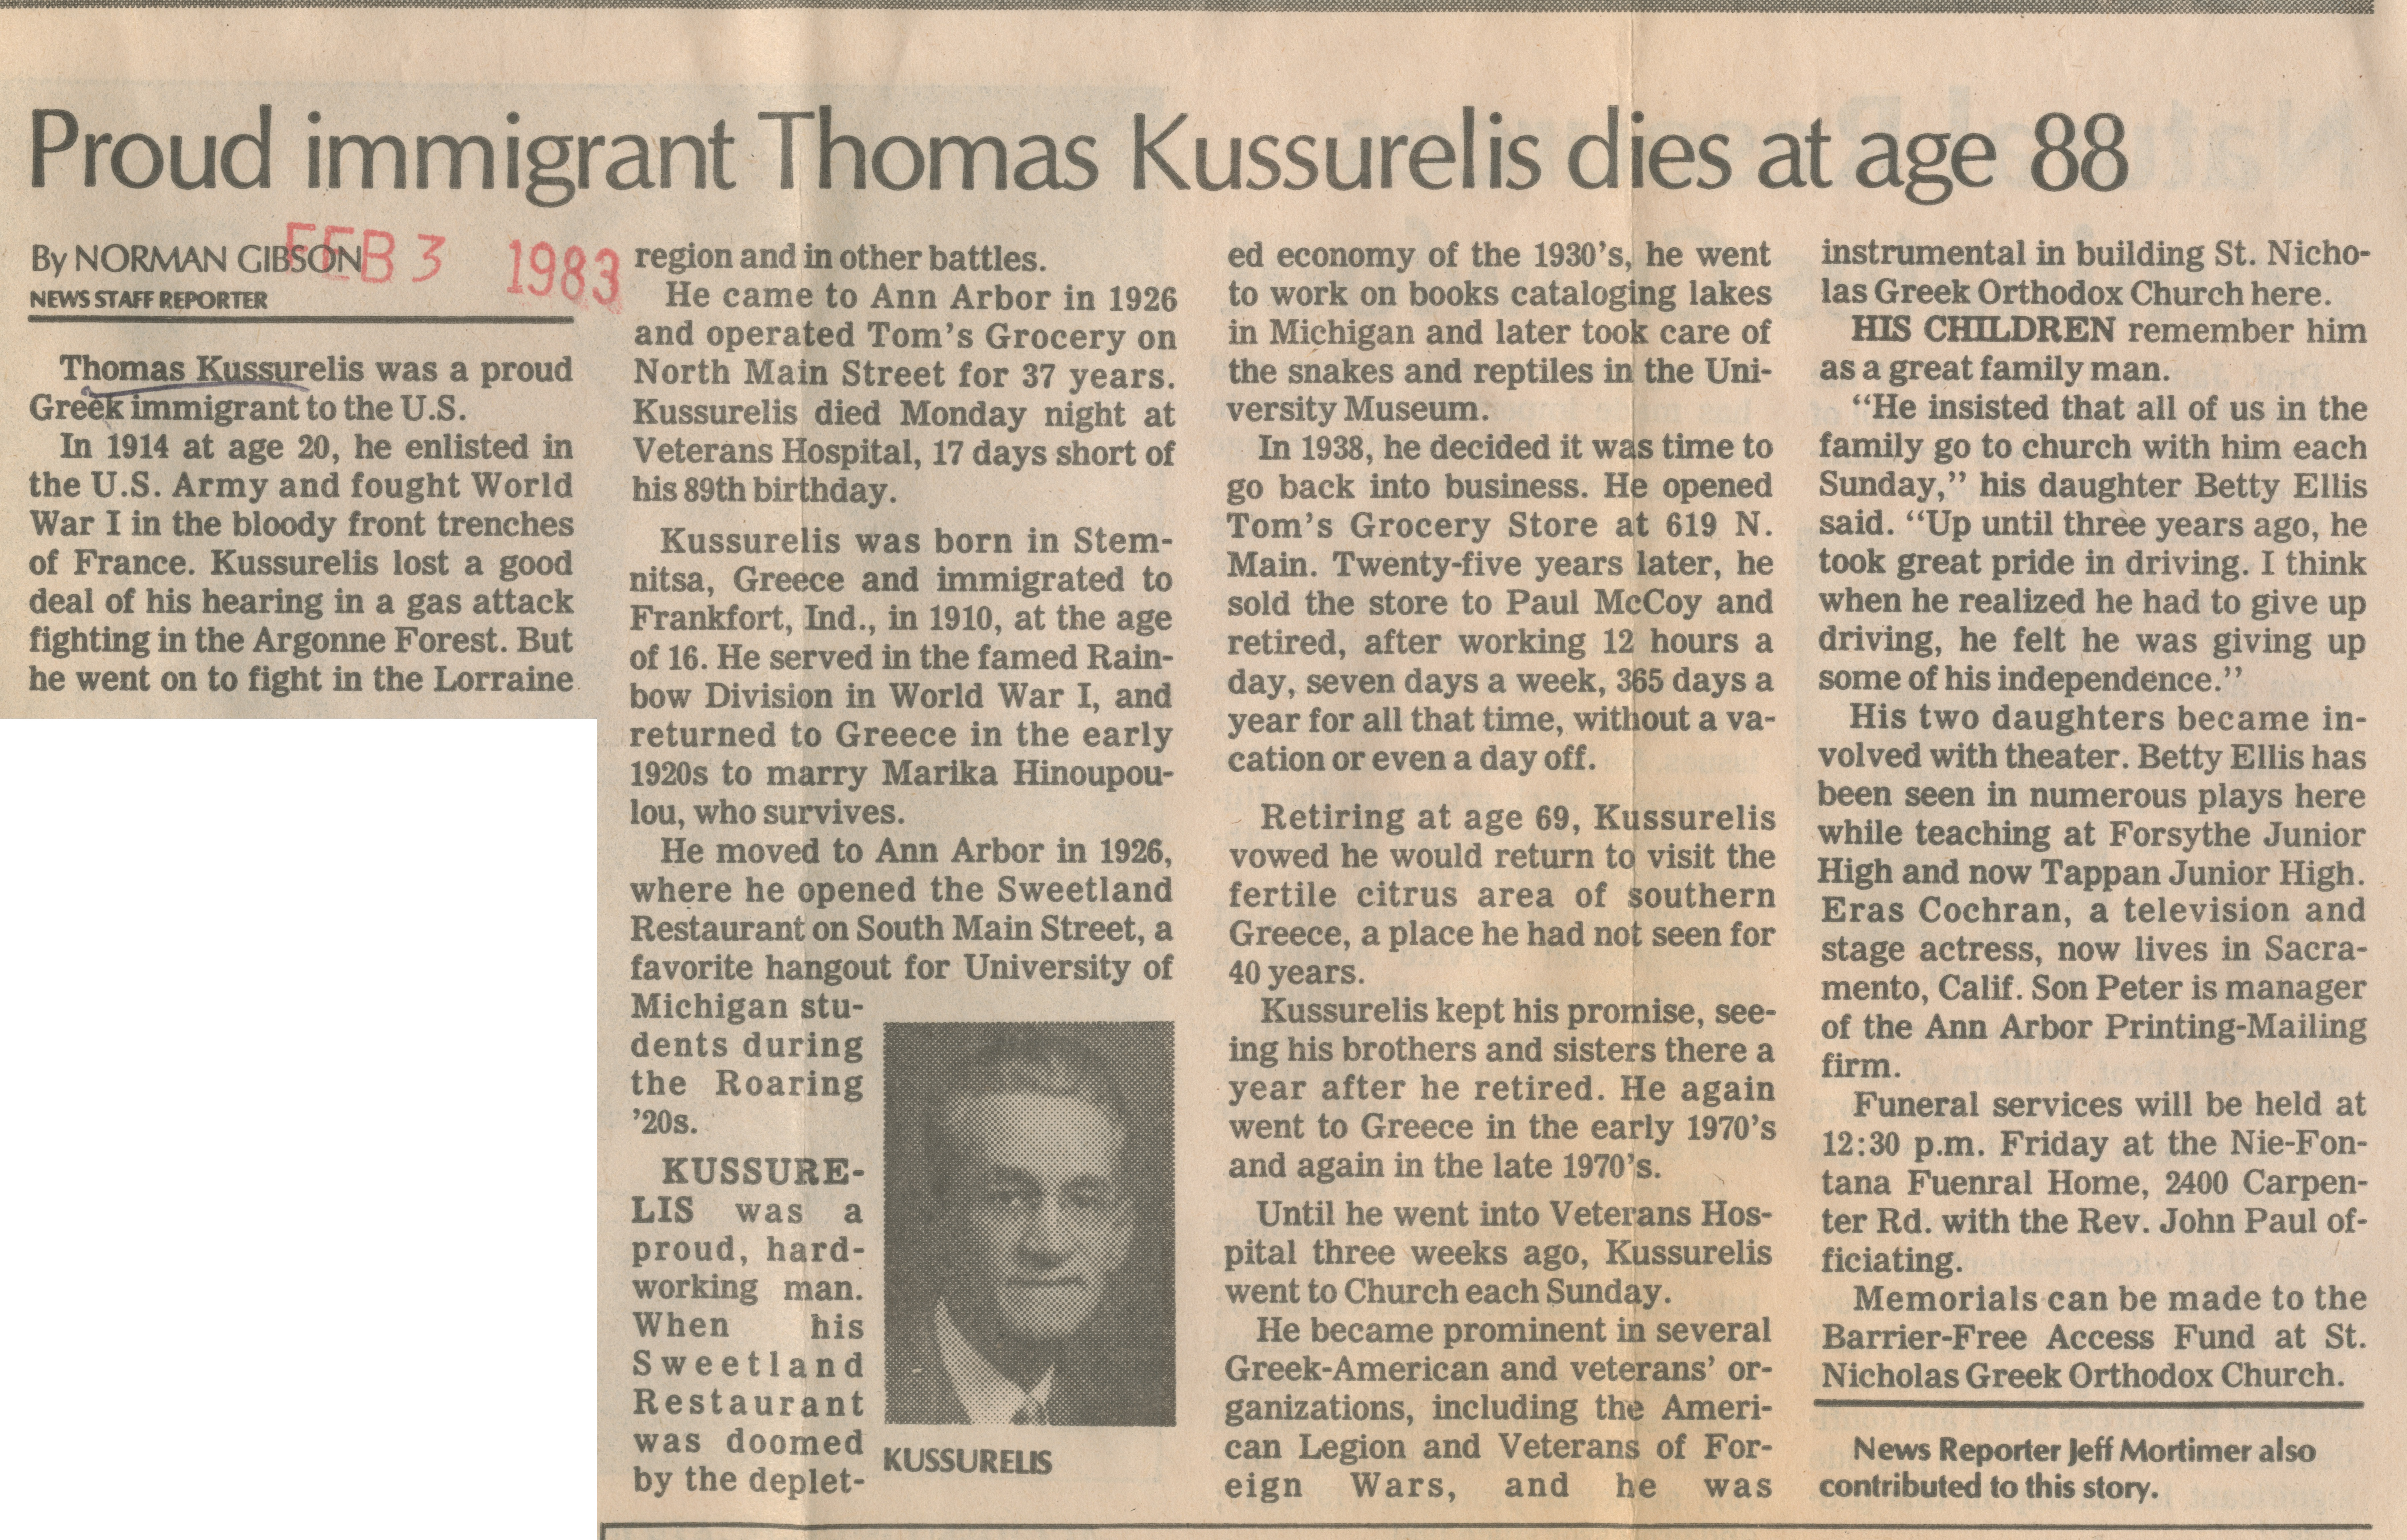 Proud immigrant Thomas Kussurelis dies at age 88 image